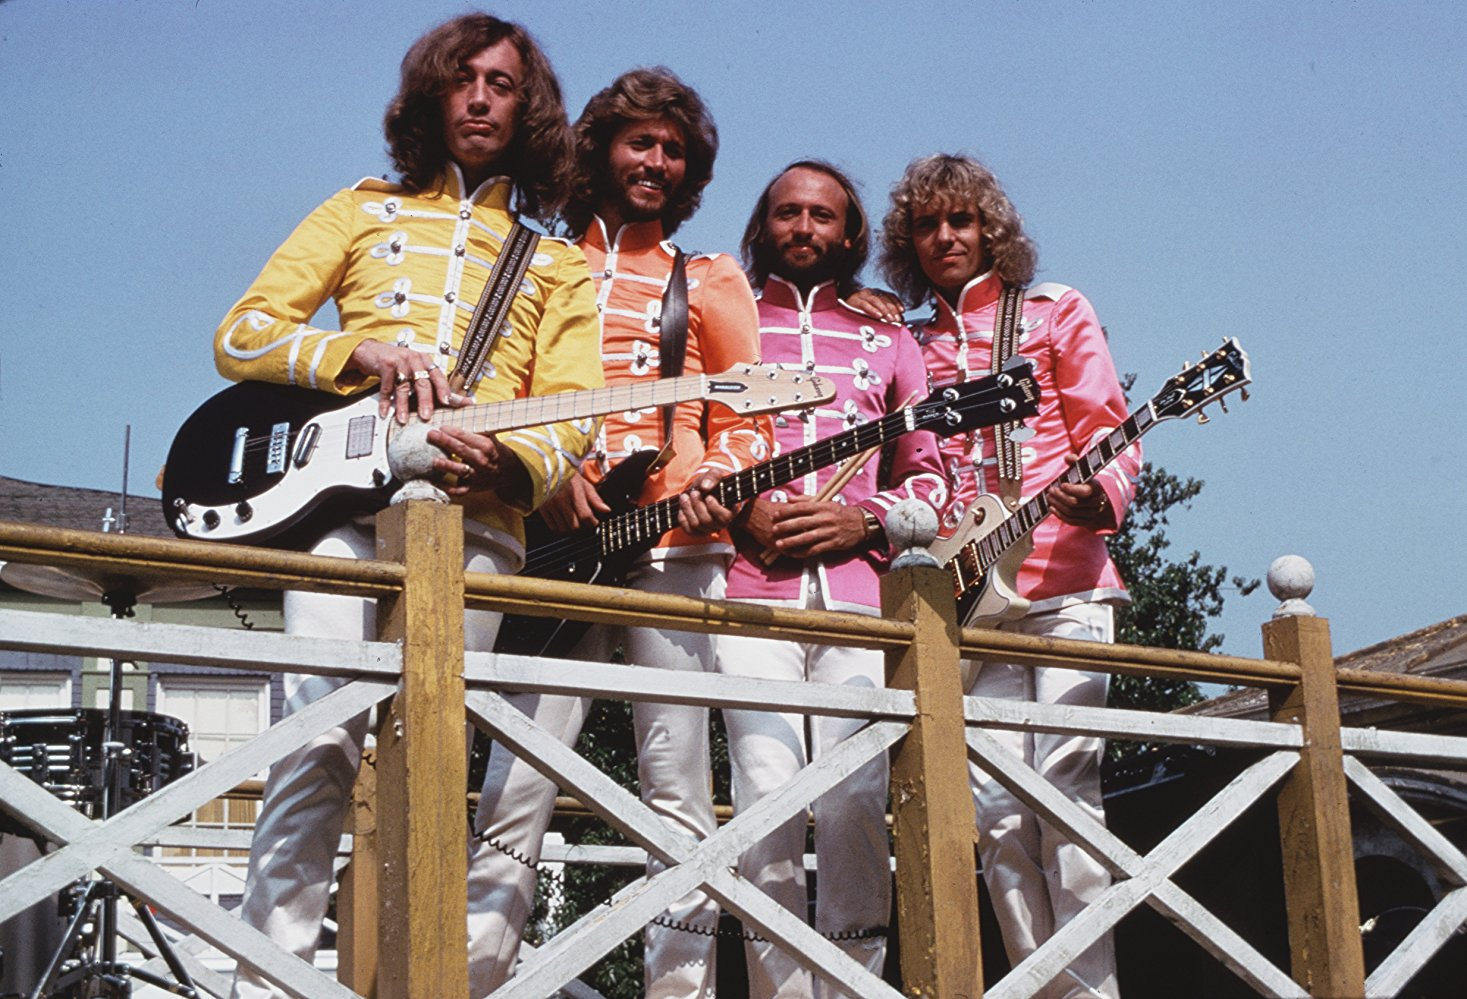 The Bee Gees with Peter Frampton as Sgt. Pepper's Lonely Hearts Club Band